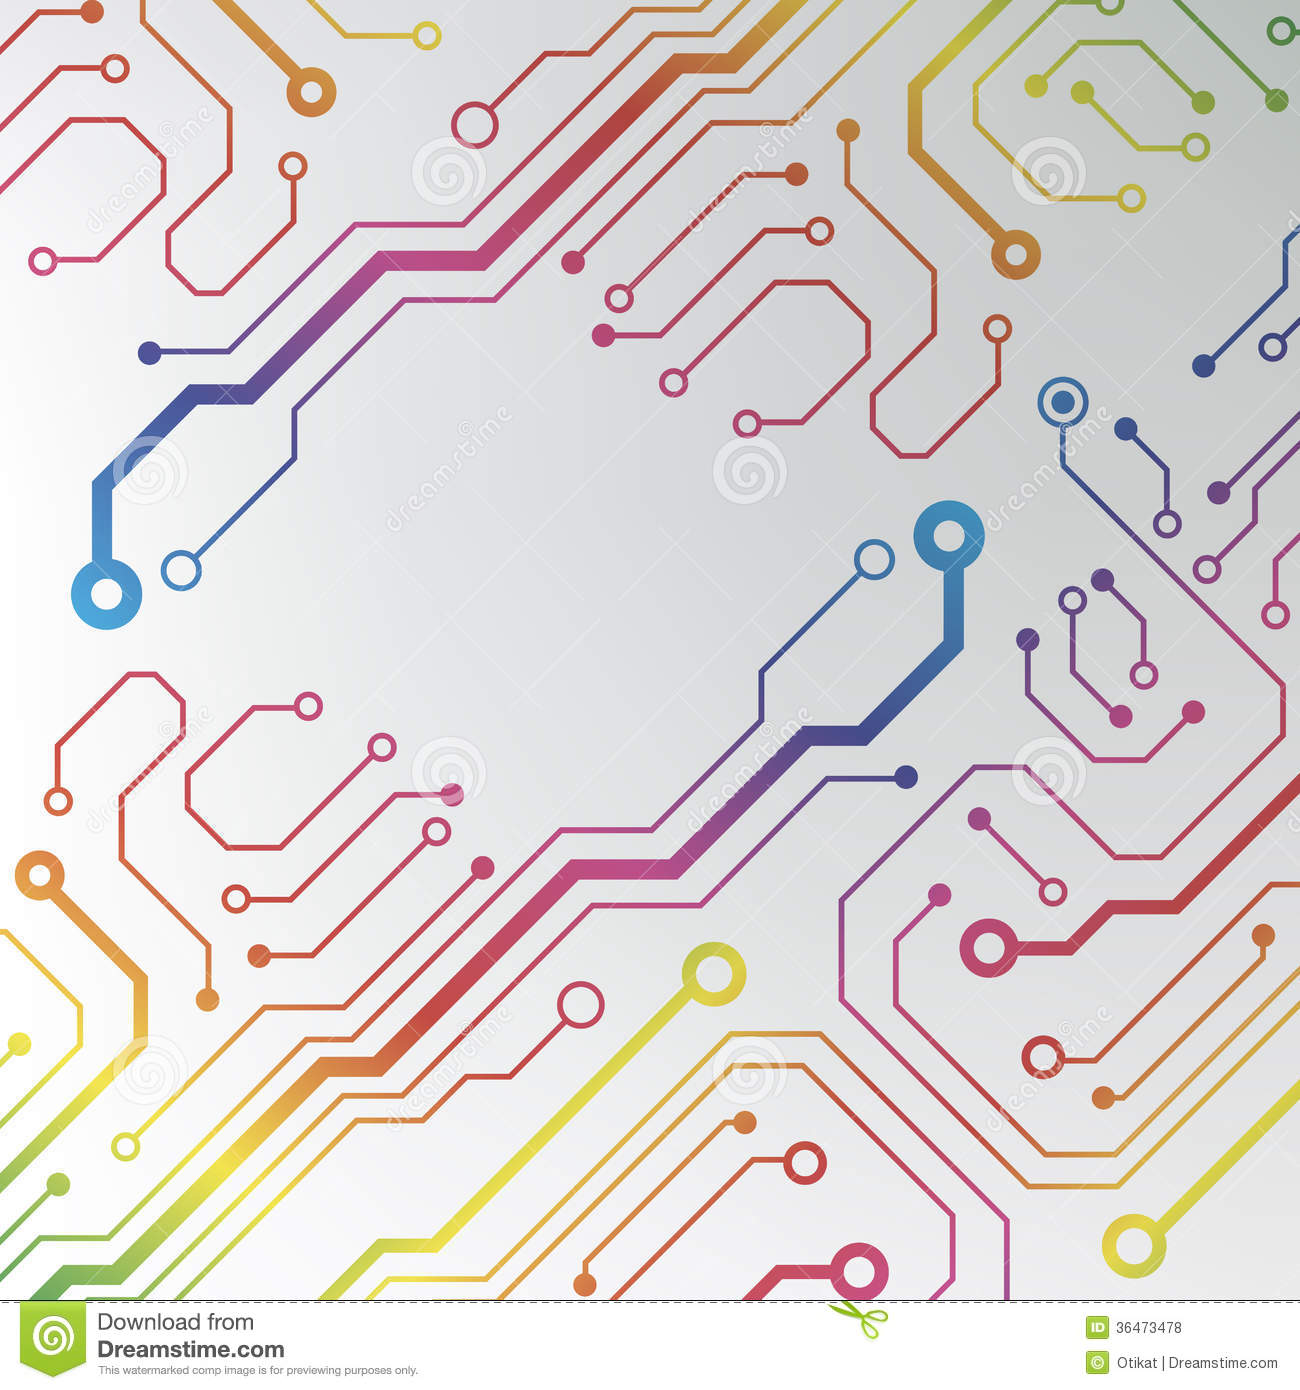 Free Circuit Board Illustration Manual Guide Wiring Diagram Background Royalty Stock Image 24974606 Abstract Colorful Lined Pattern Rh Dreamstime Com